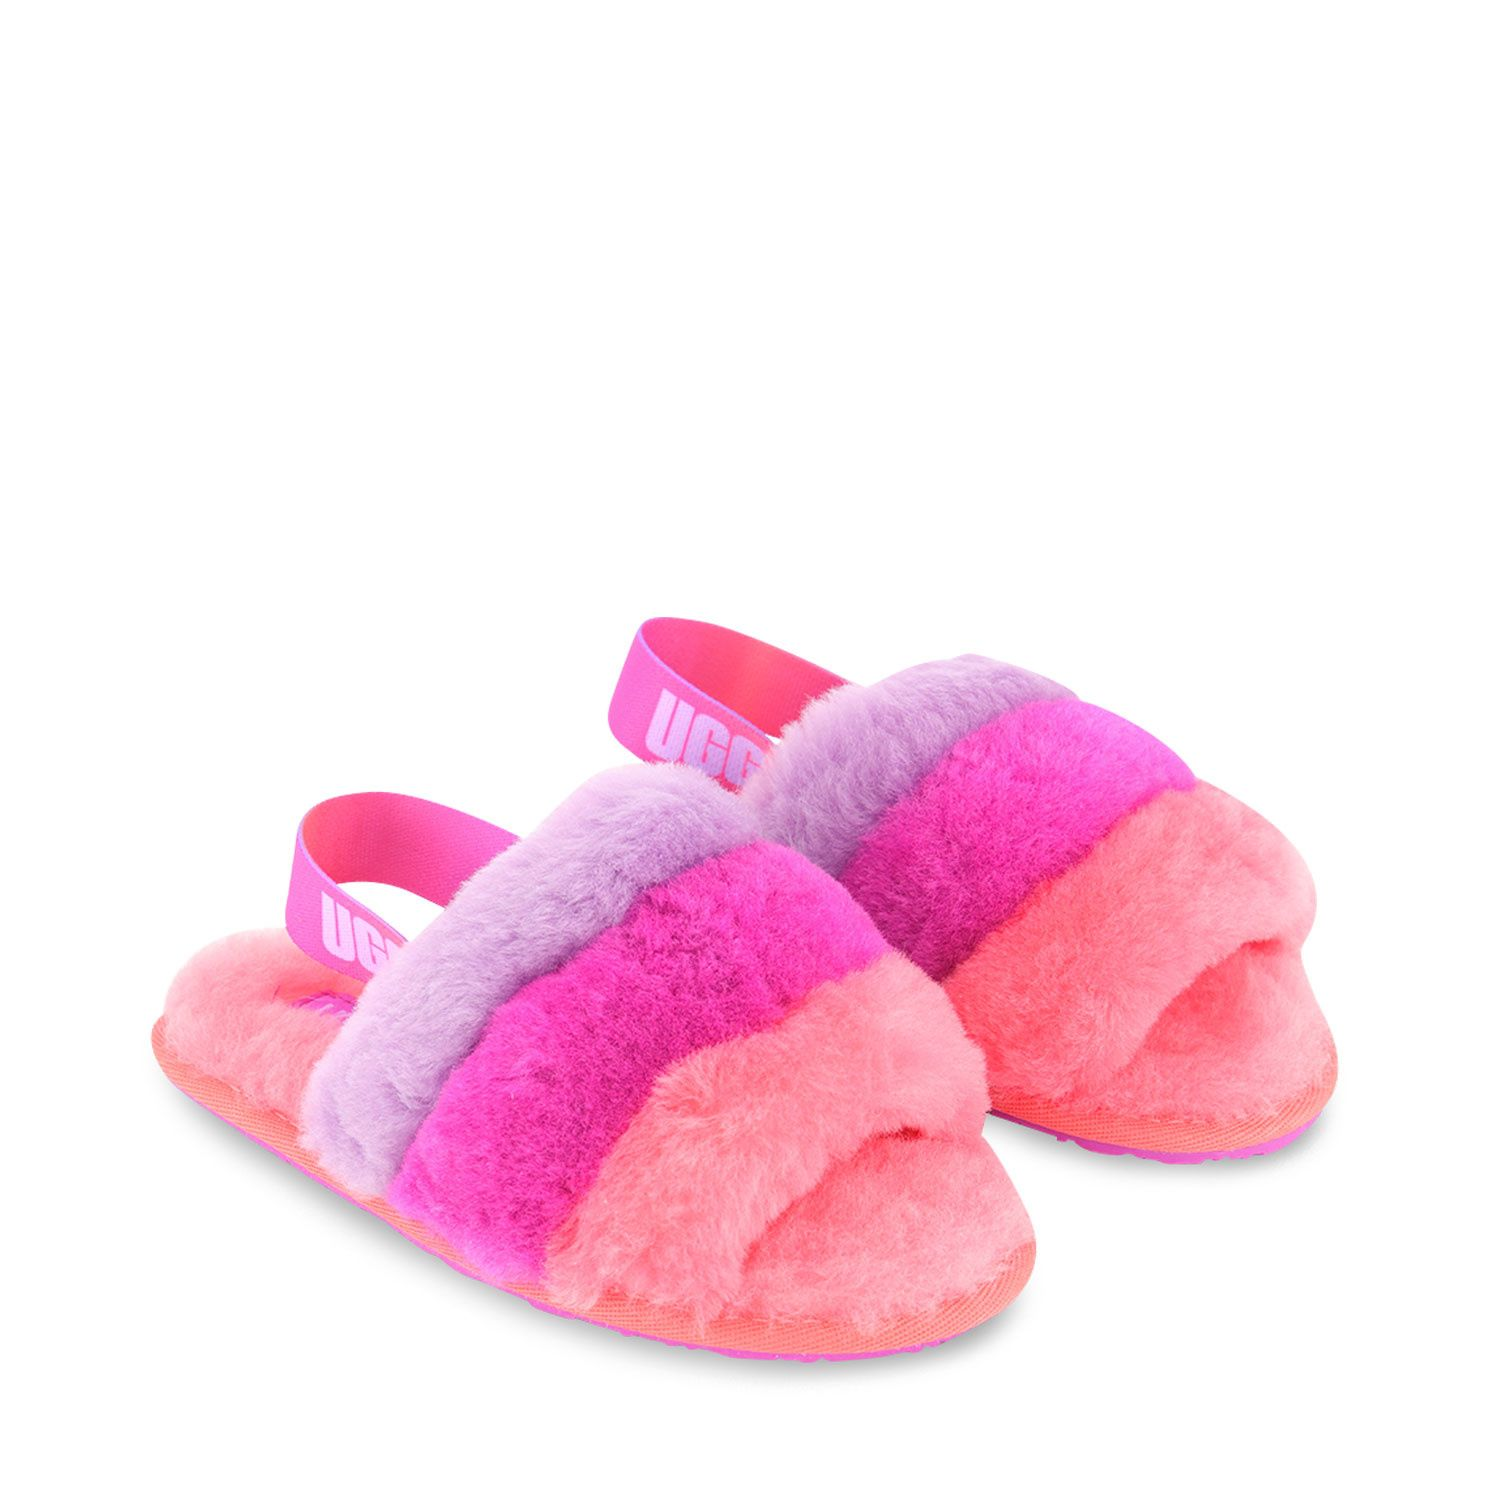 Picture of Ugg 1120073 kids slippers pink